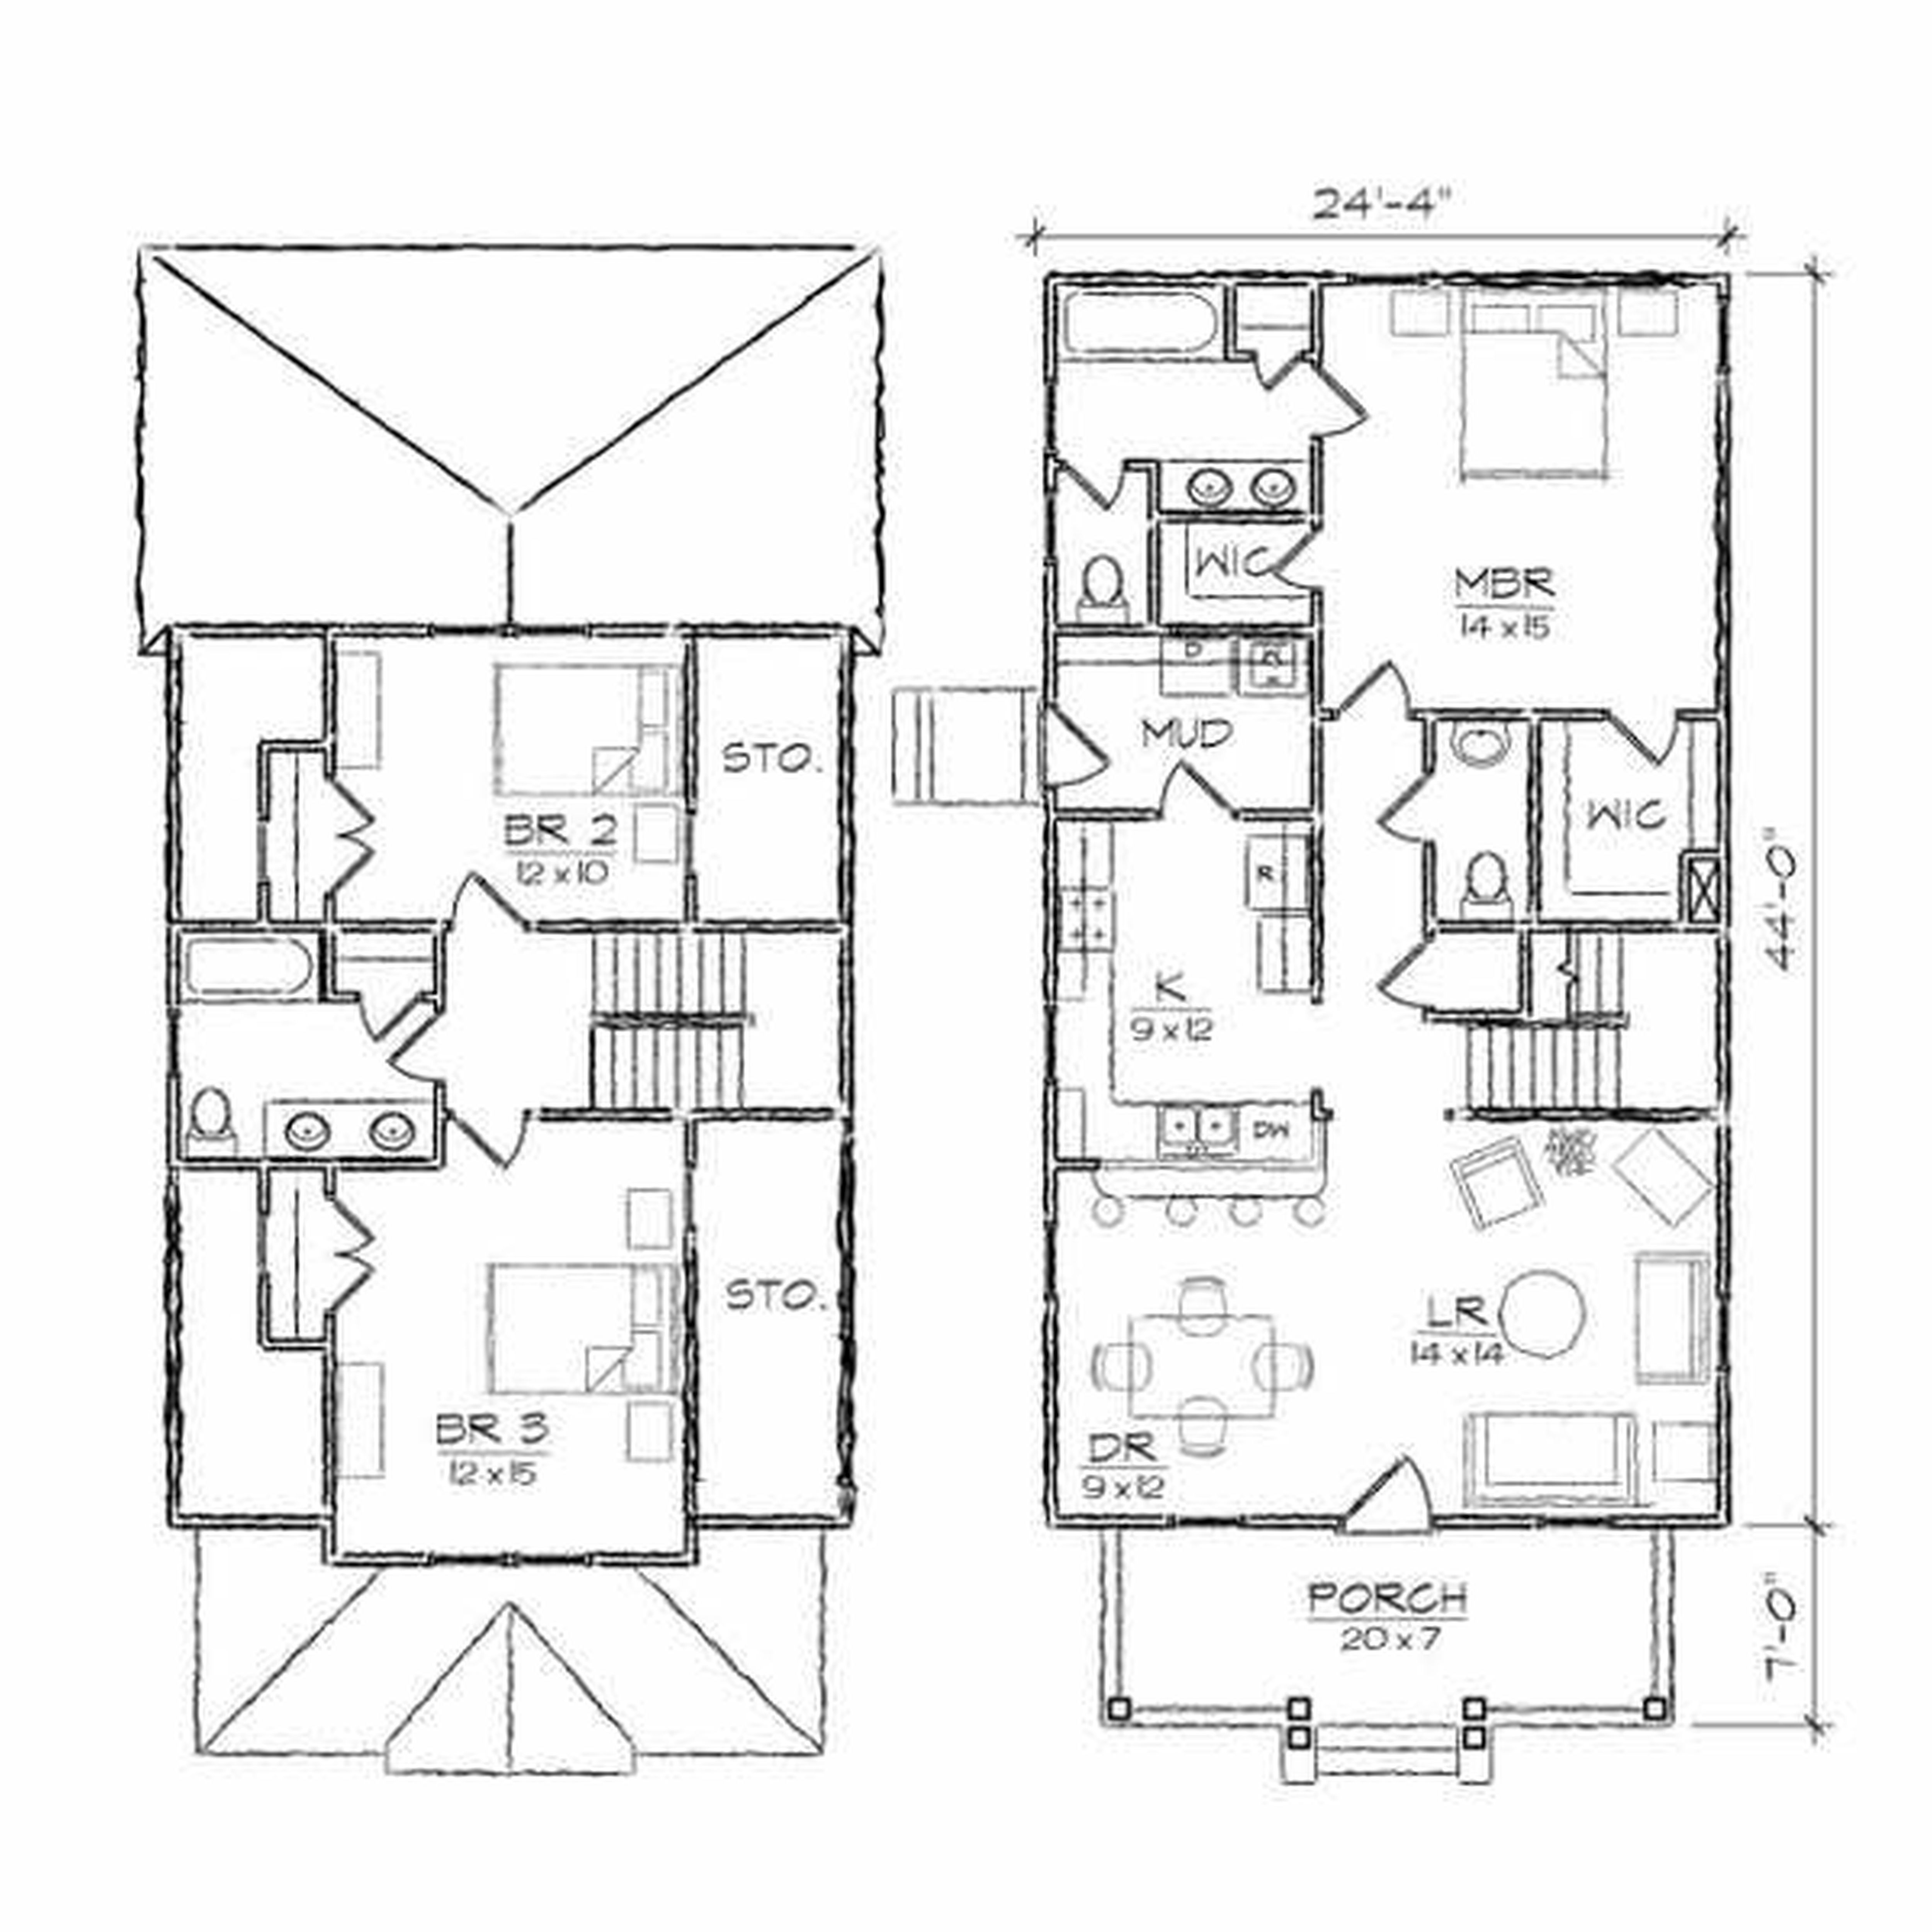 5000x5000 Apartments How To Make Plan For House Awesome A Layout How